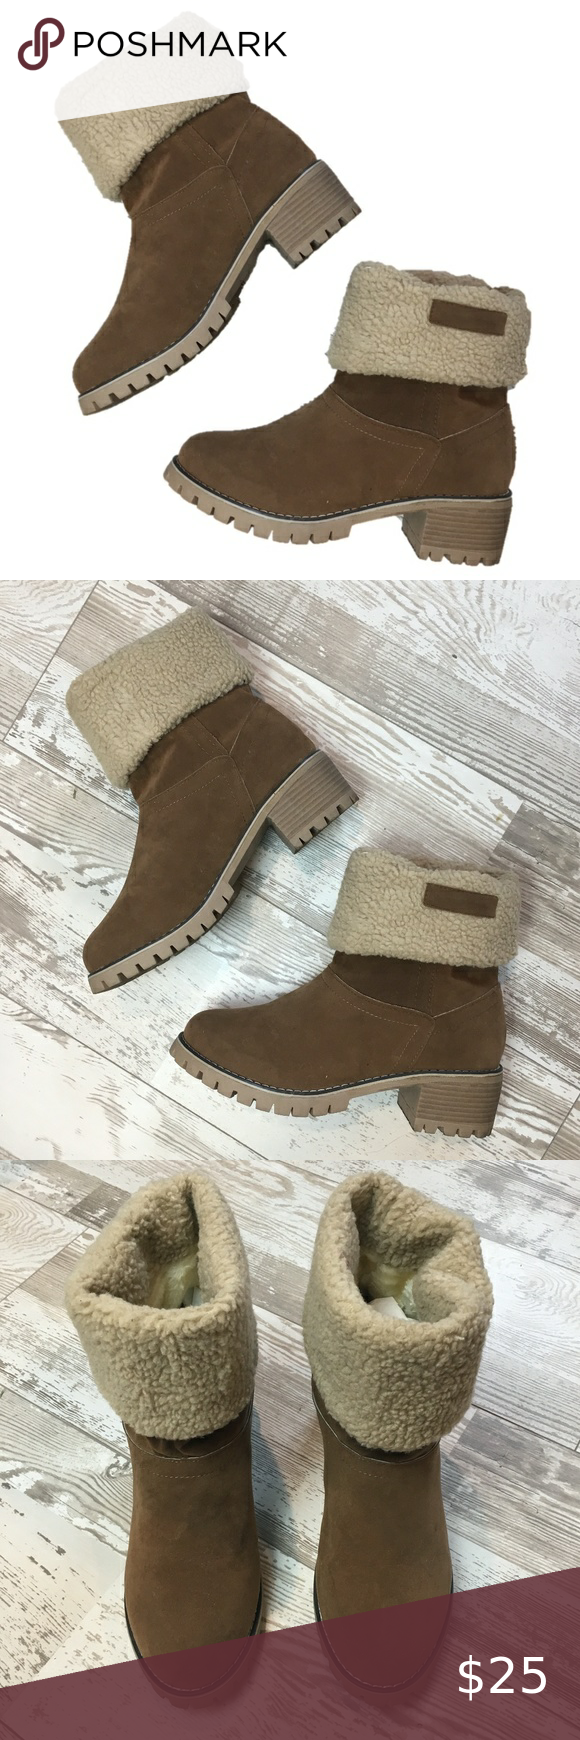 Fold Over Sherpa Lined Block Heel Boots